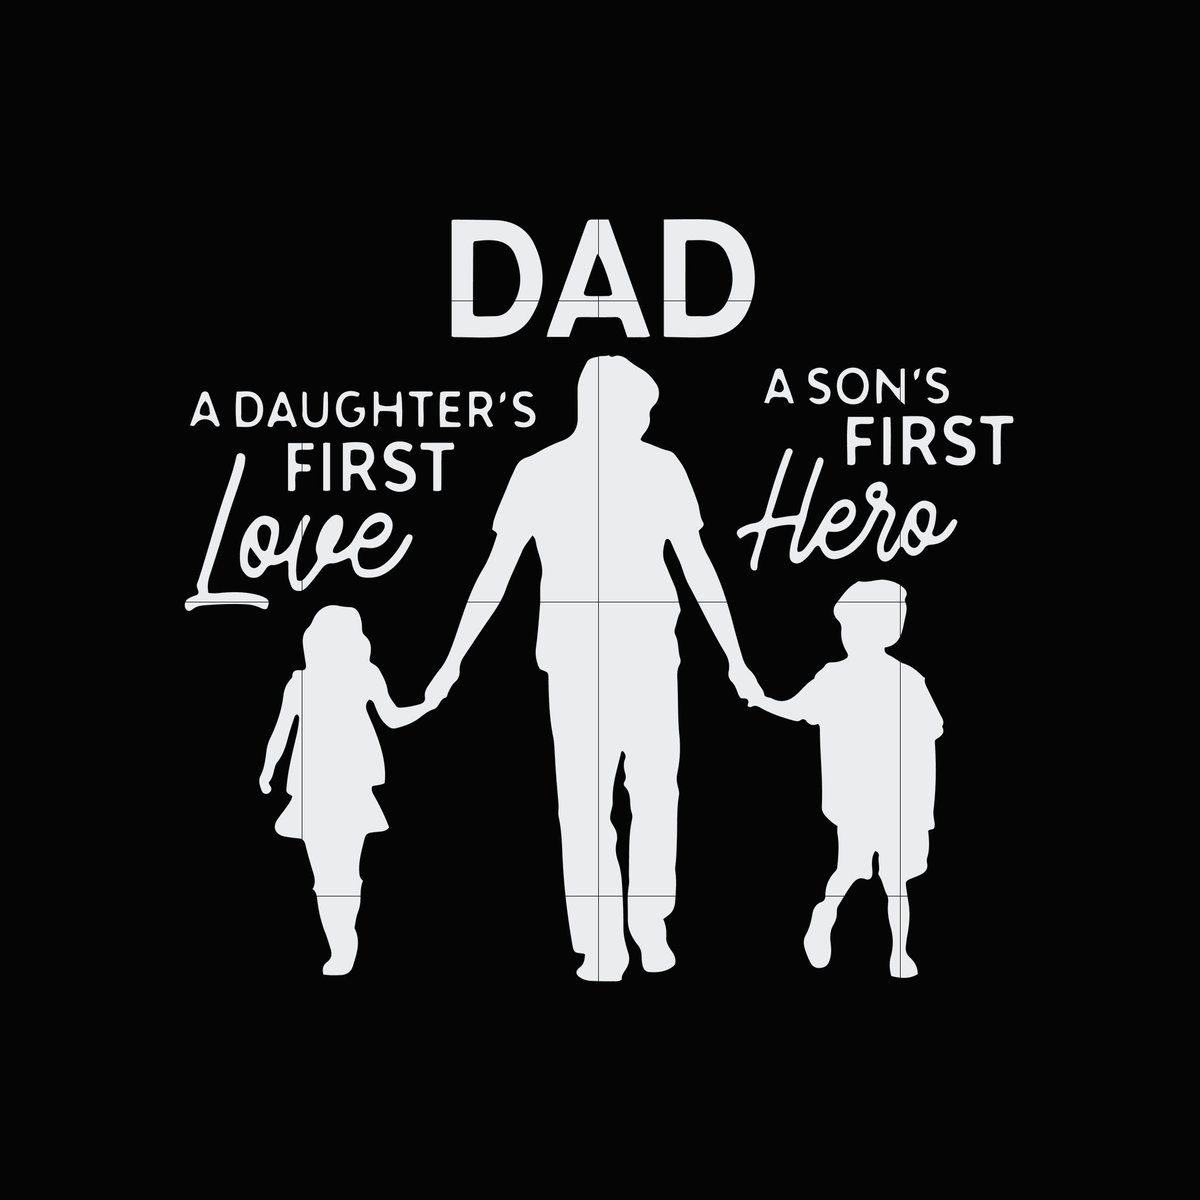 Download Dad a daughter's first love a son's first hero svg,dxf,eps ...